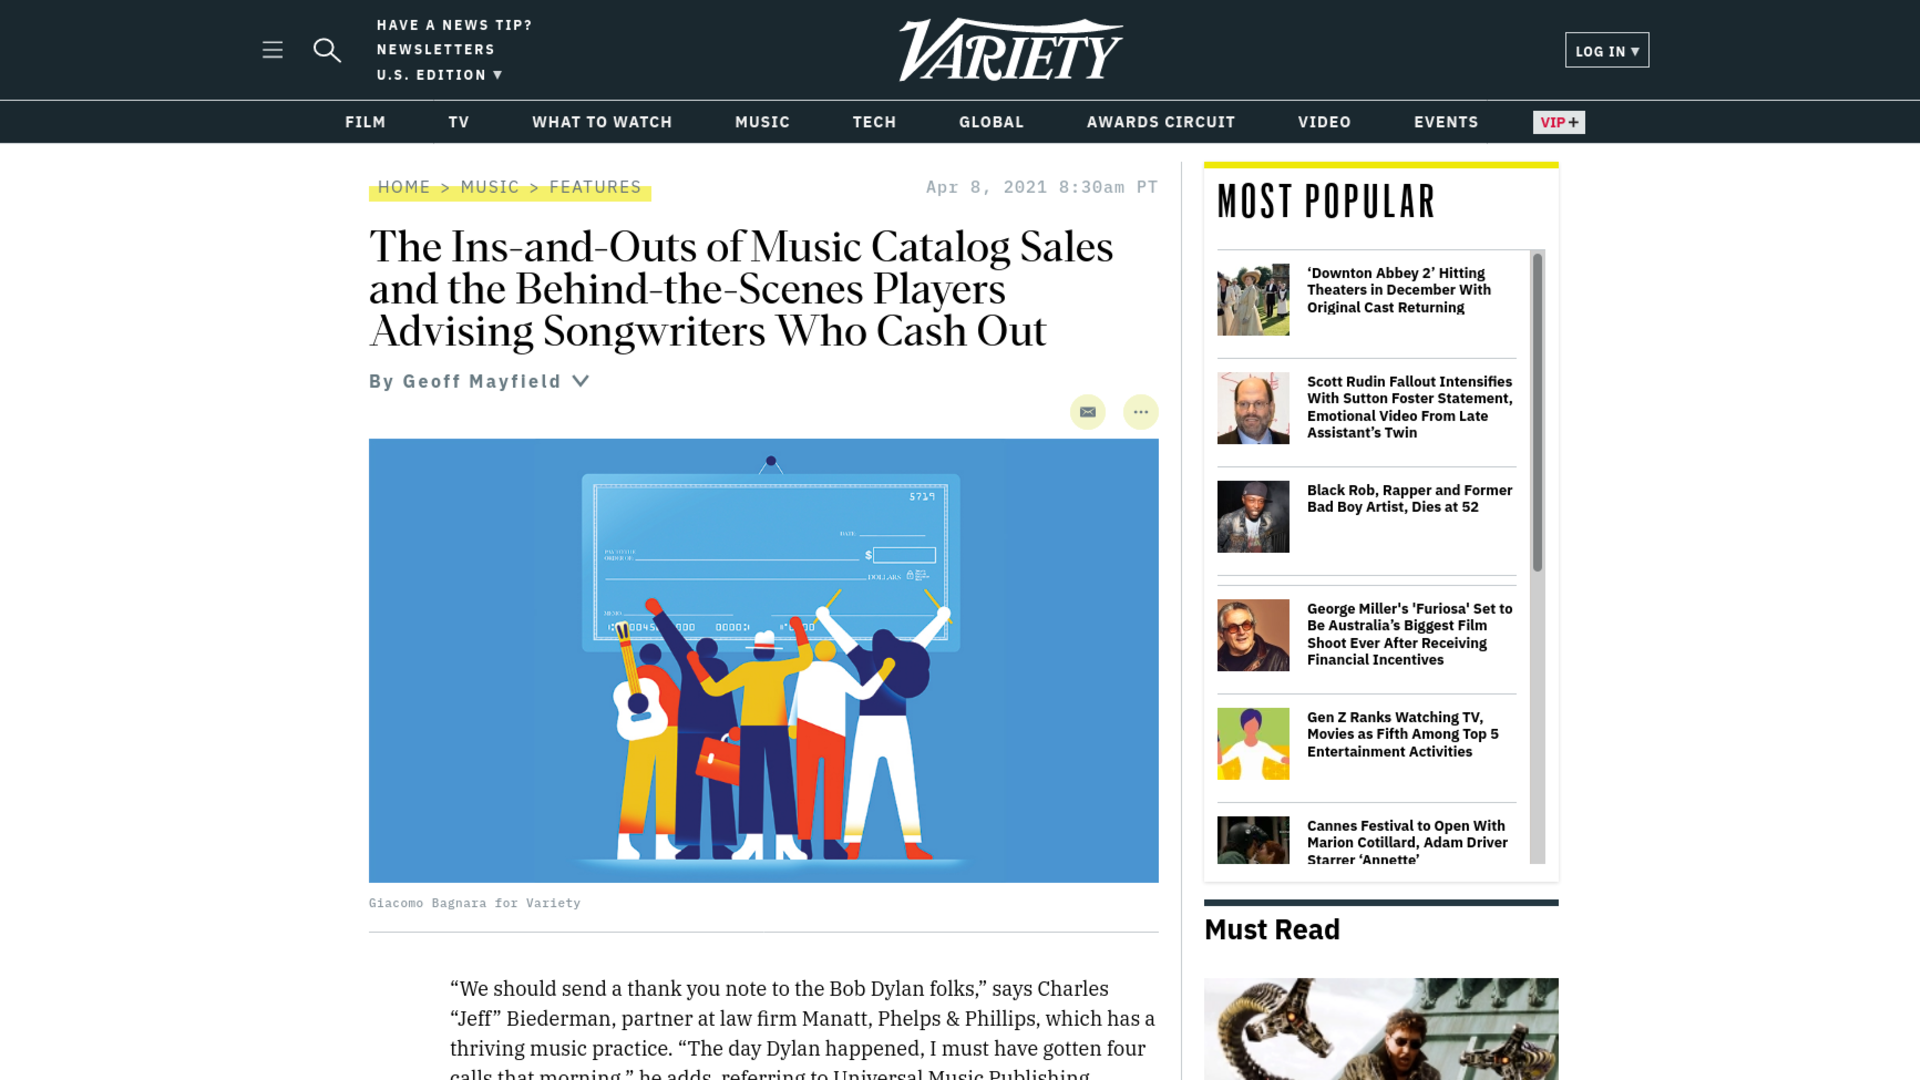 Fairness Rocks News The Ins-and-Outs of Music Catalog Sales and the Behind-the-Scenes Players Advising Songwriters Who Cash Out